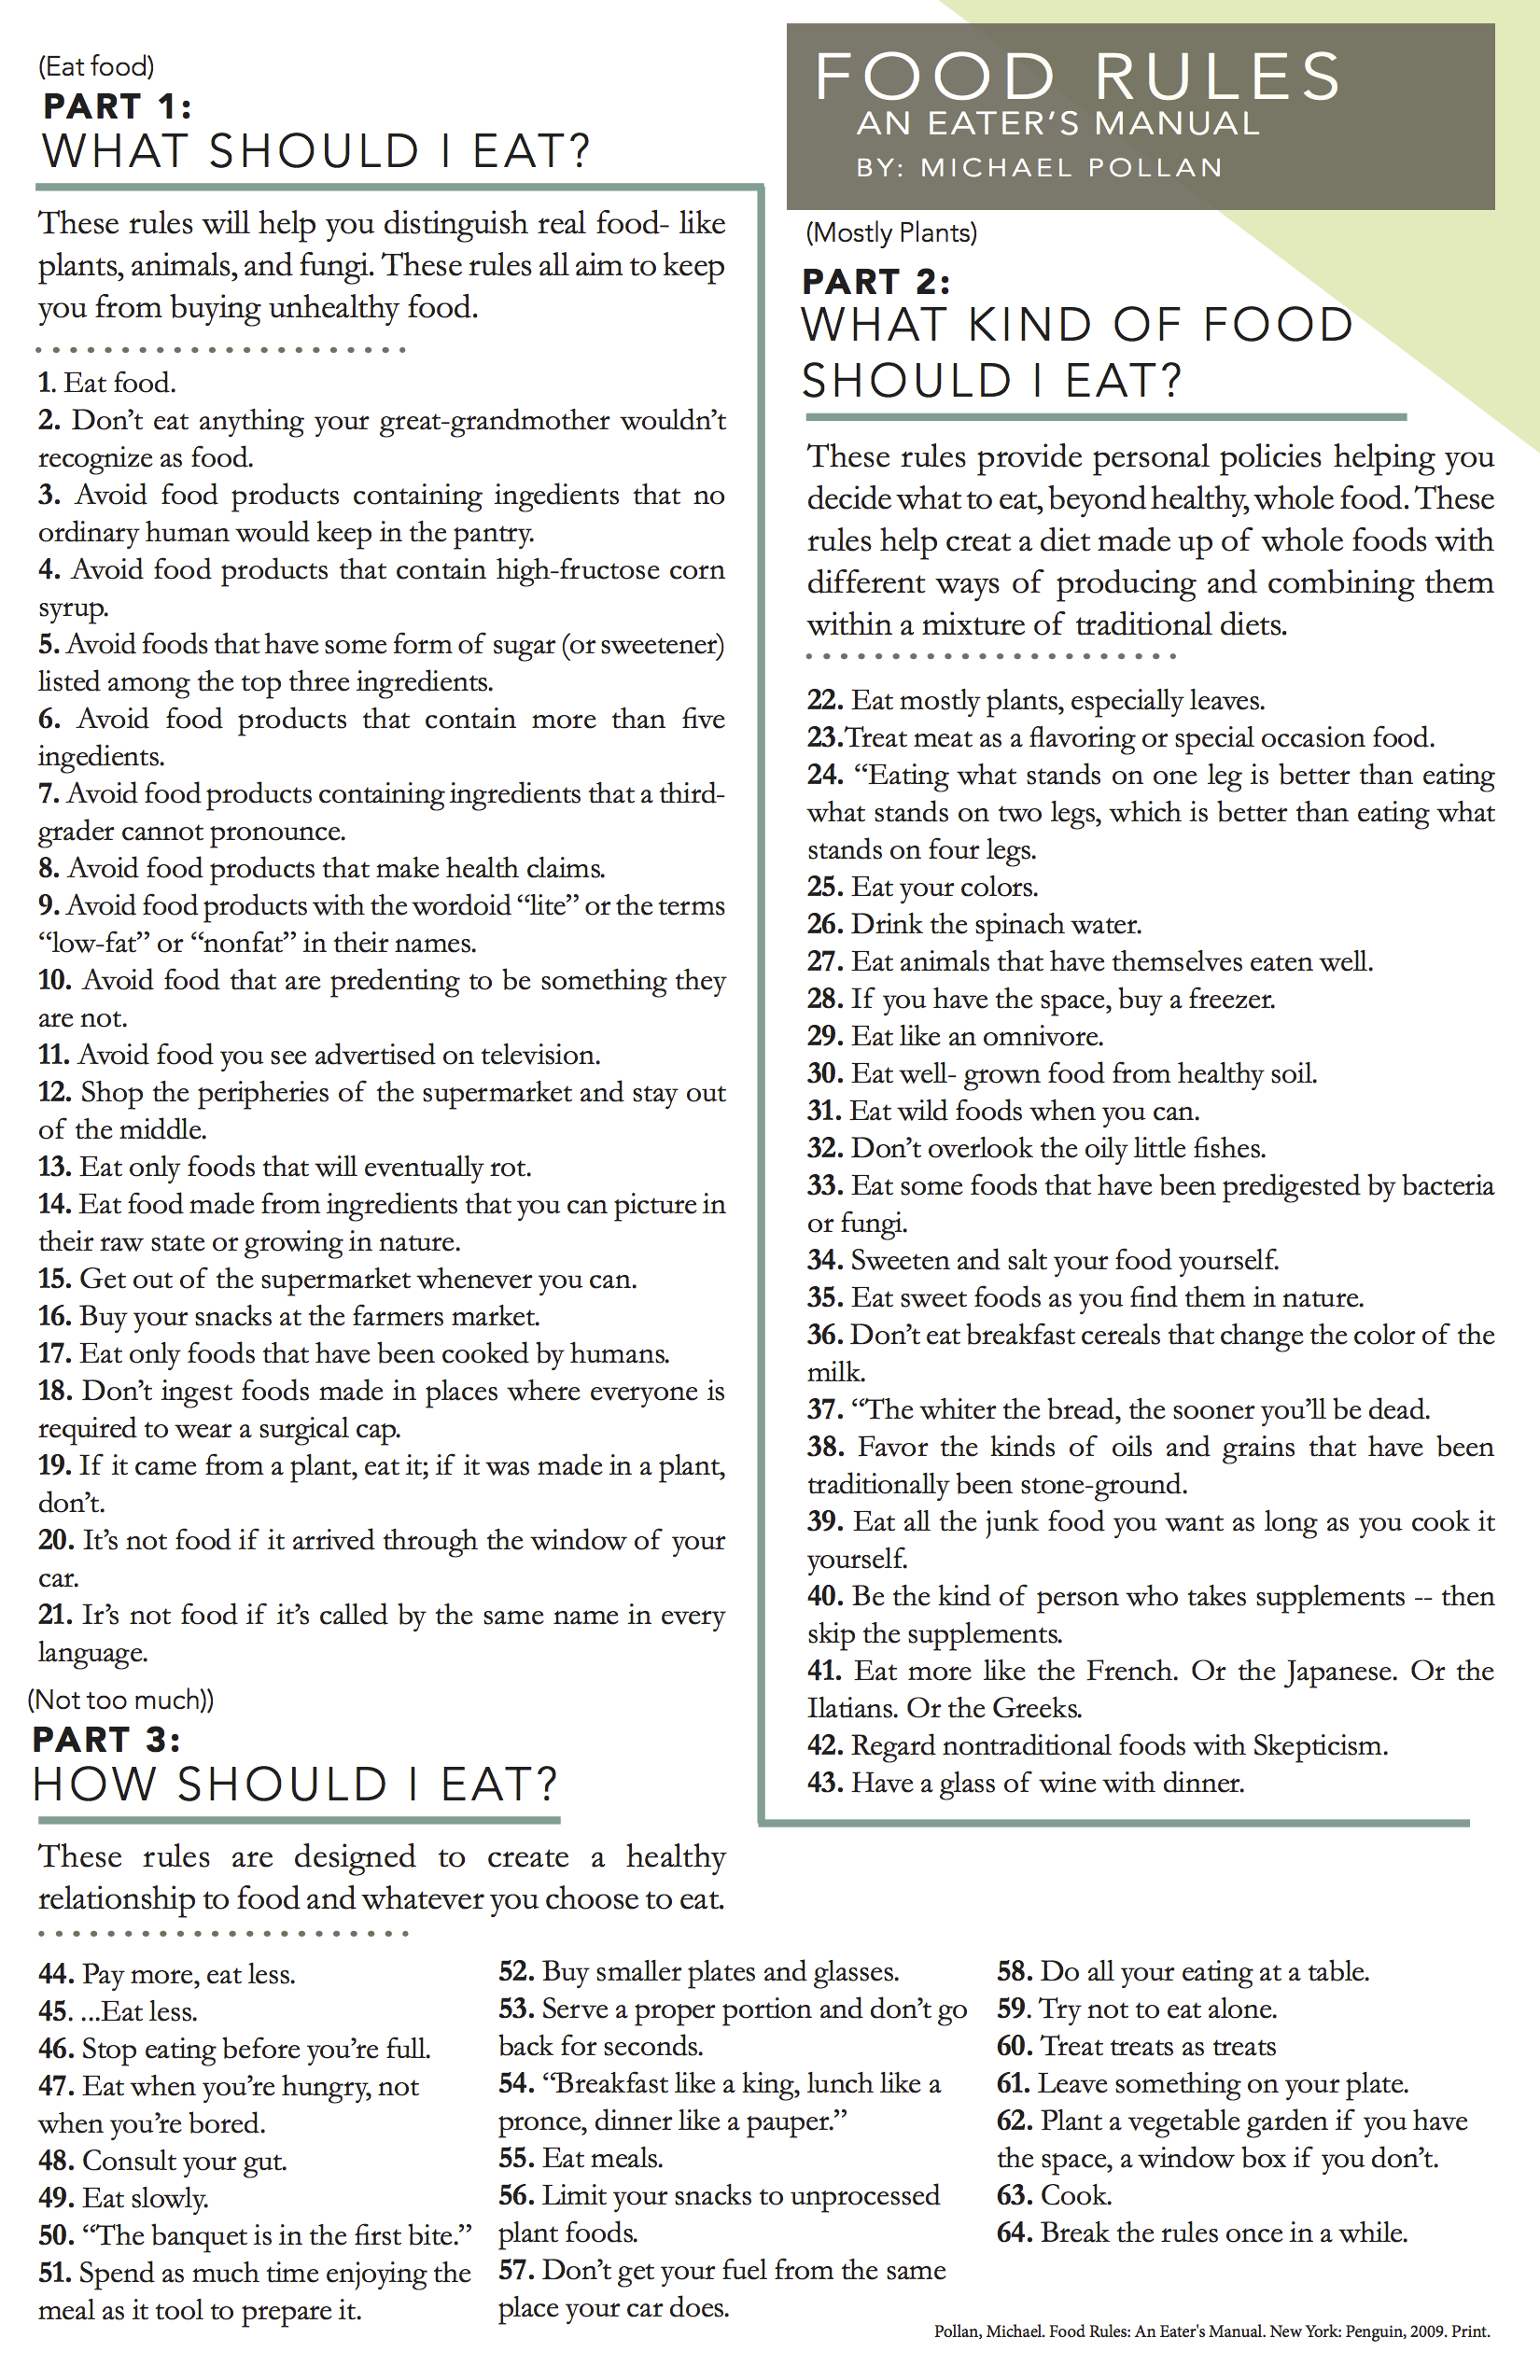 ALEX food rules book report1-2 (dragged) 1 copy.png